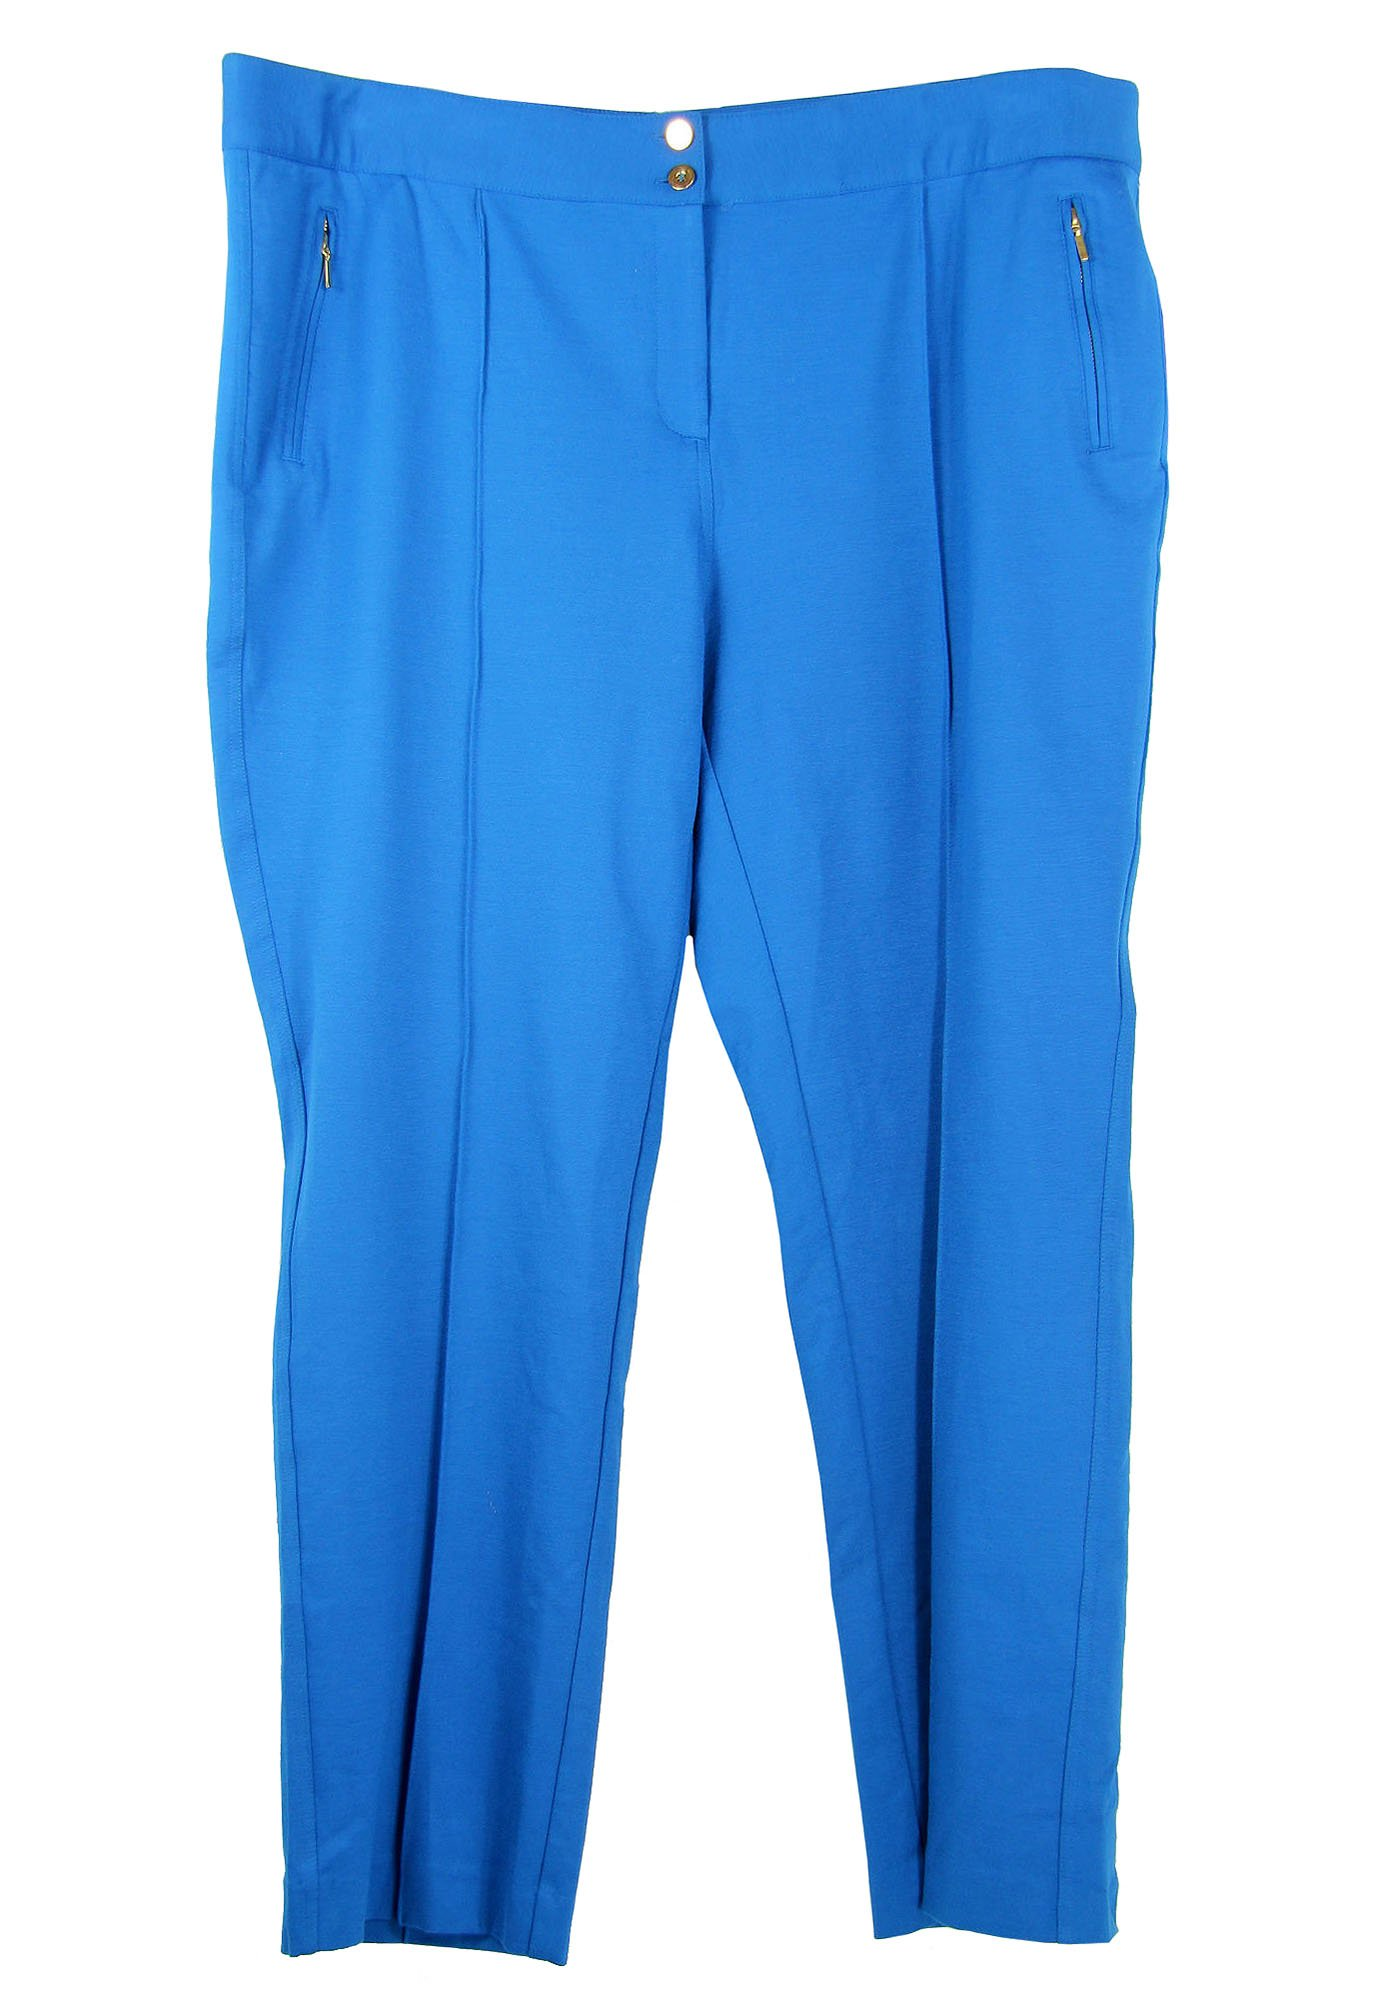 Alfani Women's Plus Comfort Waist Zipper Detail Casual Pants (24w, London Blue)